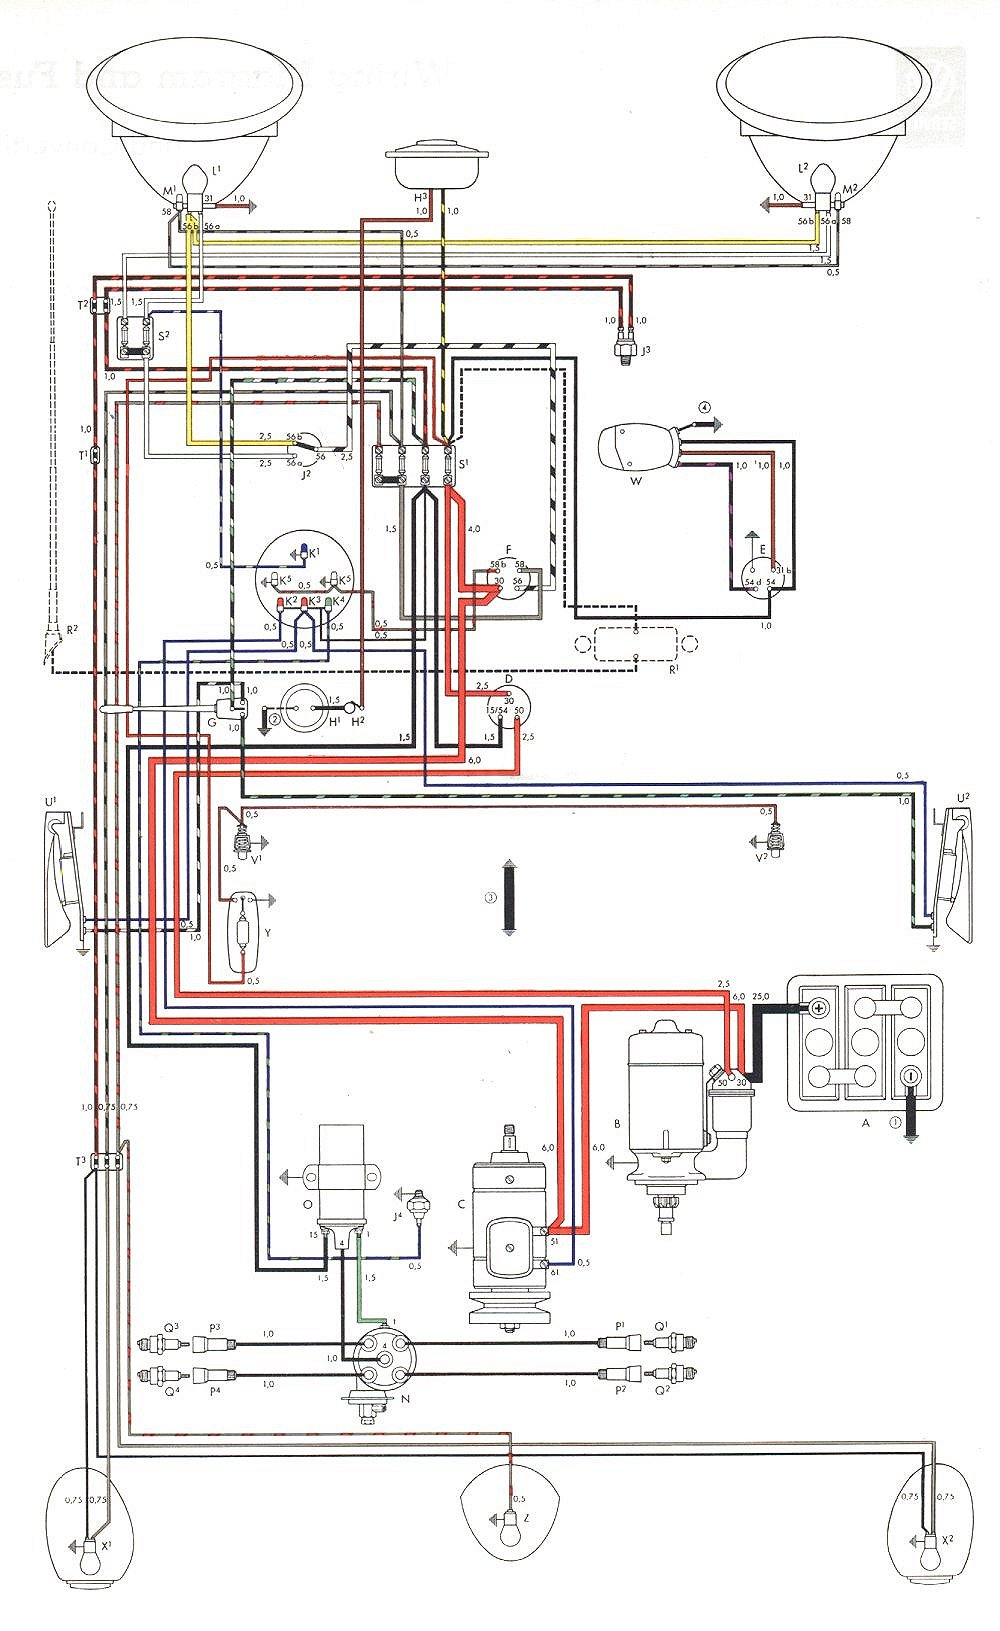 VW 58 59 72 vw beetle wiring diagram 2001 vw alternator wire diagram \u2022 free DIY Lingerie Harness at virtualis.co